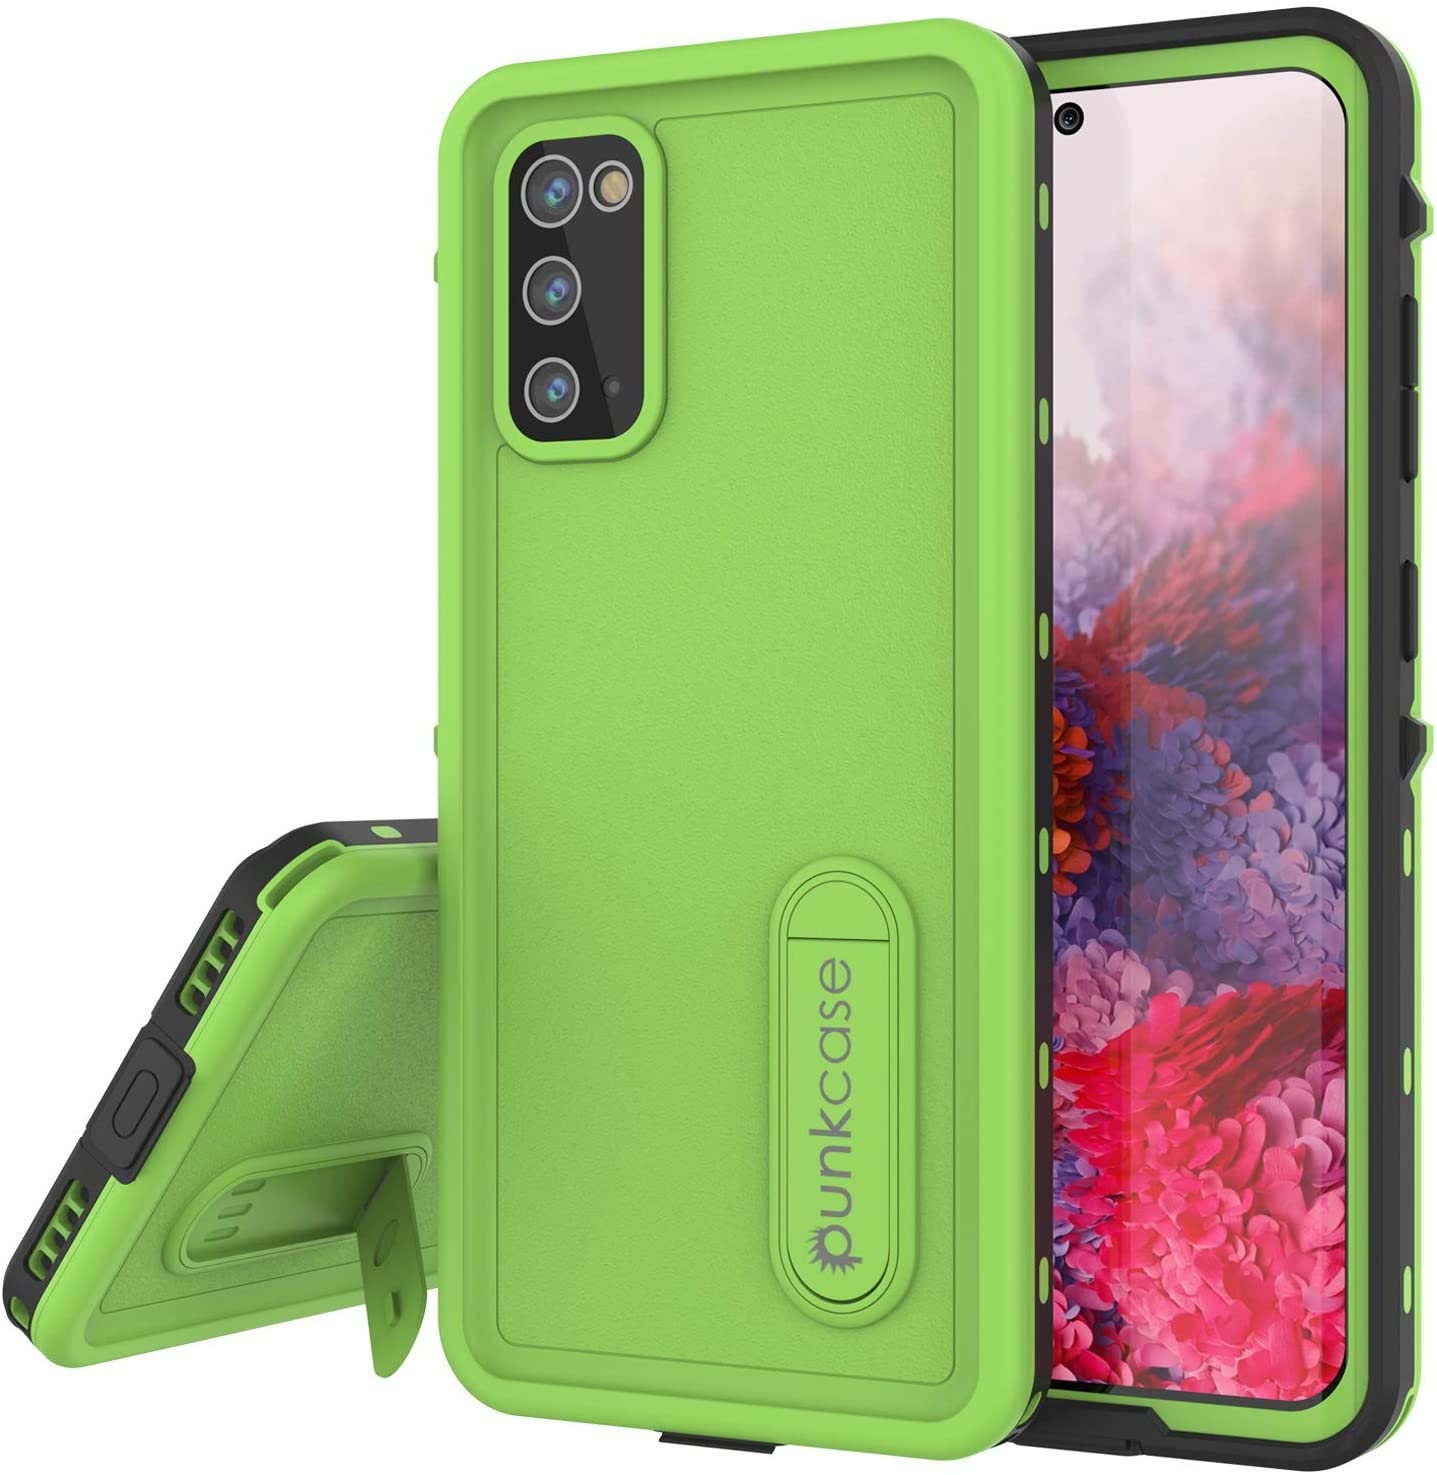 Galaxy S20 Waterproof Case, Punkcase [KickStud Series] Armor Cover [Light Green]